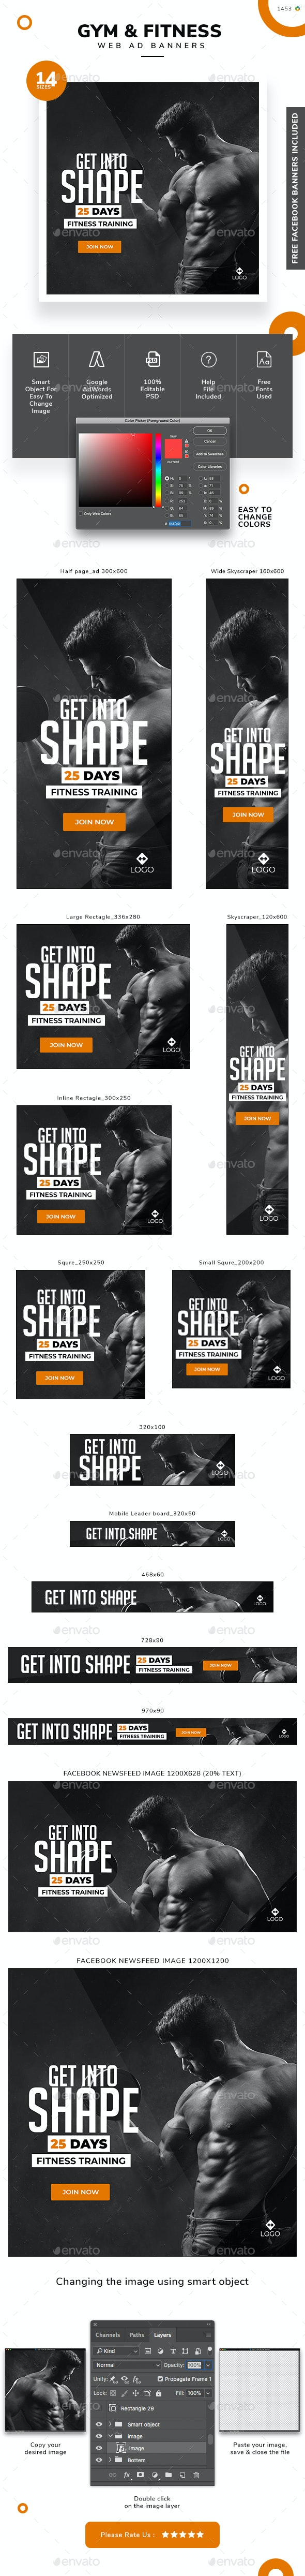 Fitness Banner Set - Banners & Ads Web Elements